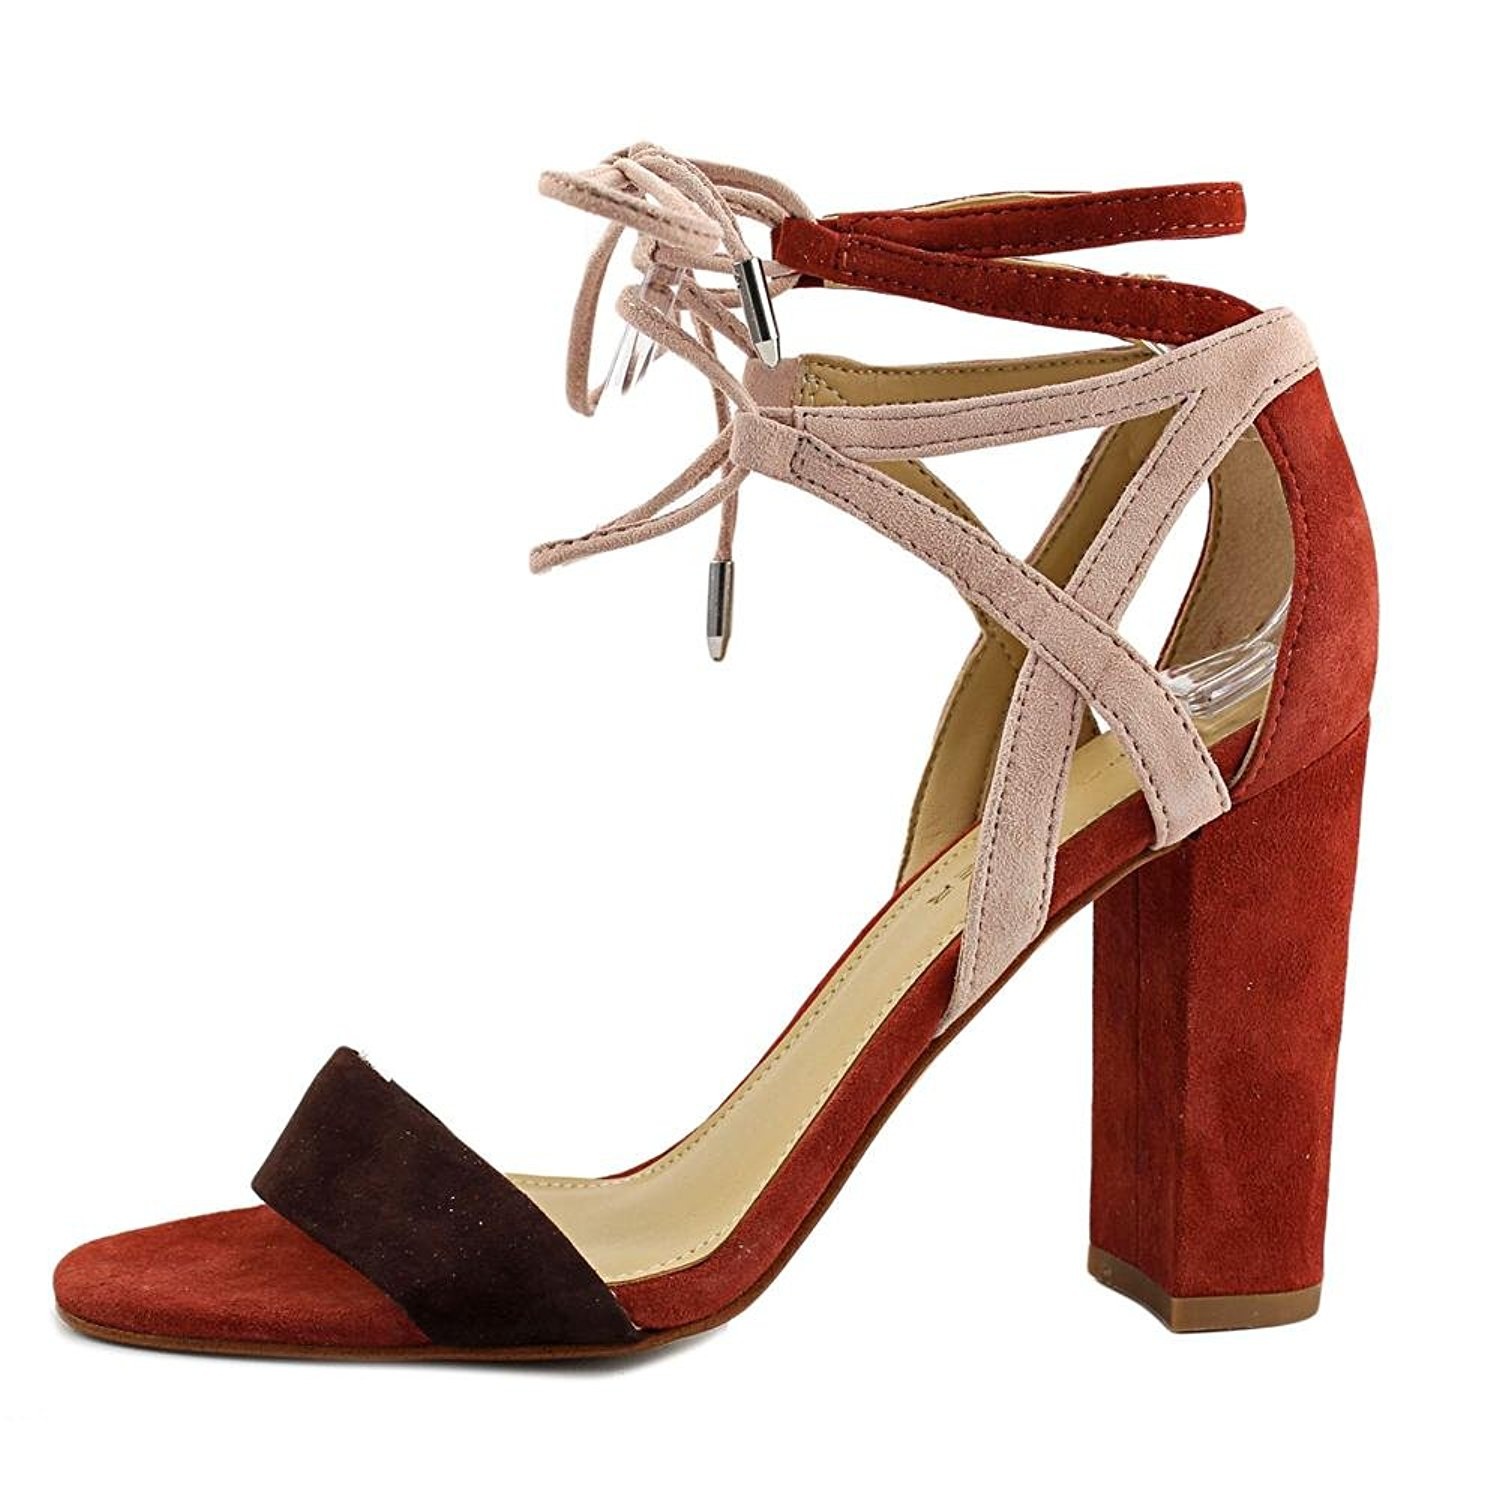 6f9acec3f164 Marc Fisher Fatima Womens Heeled Sandals Brown Multi Suede 6 US   4 ...